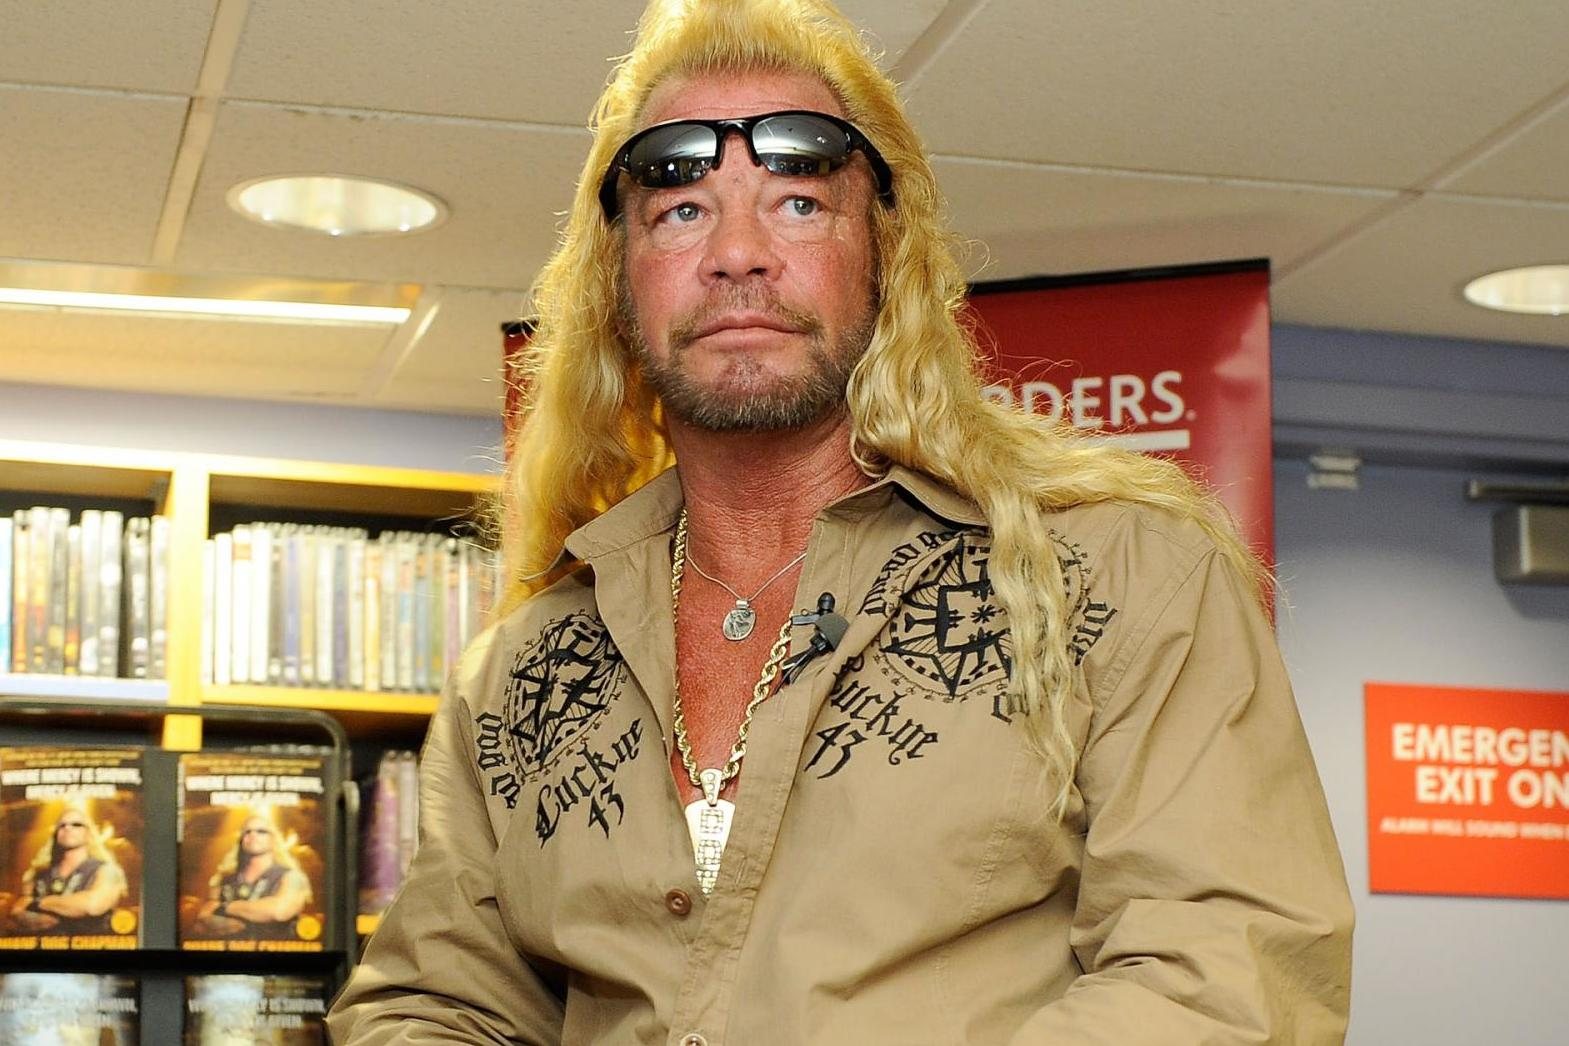 'Dog the Bounty Hunter' Duane Chapman hospitalised after heart emergency, report says